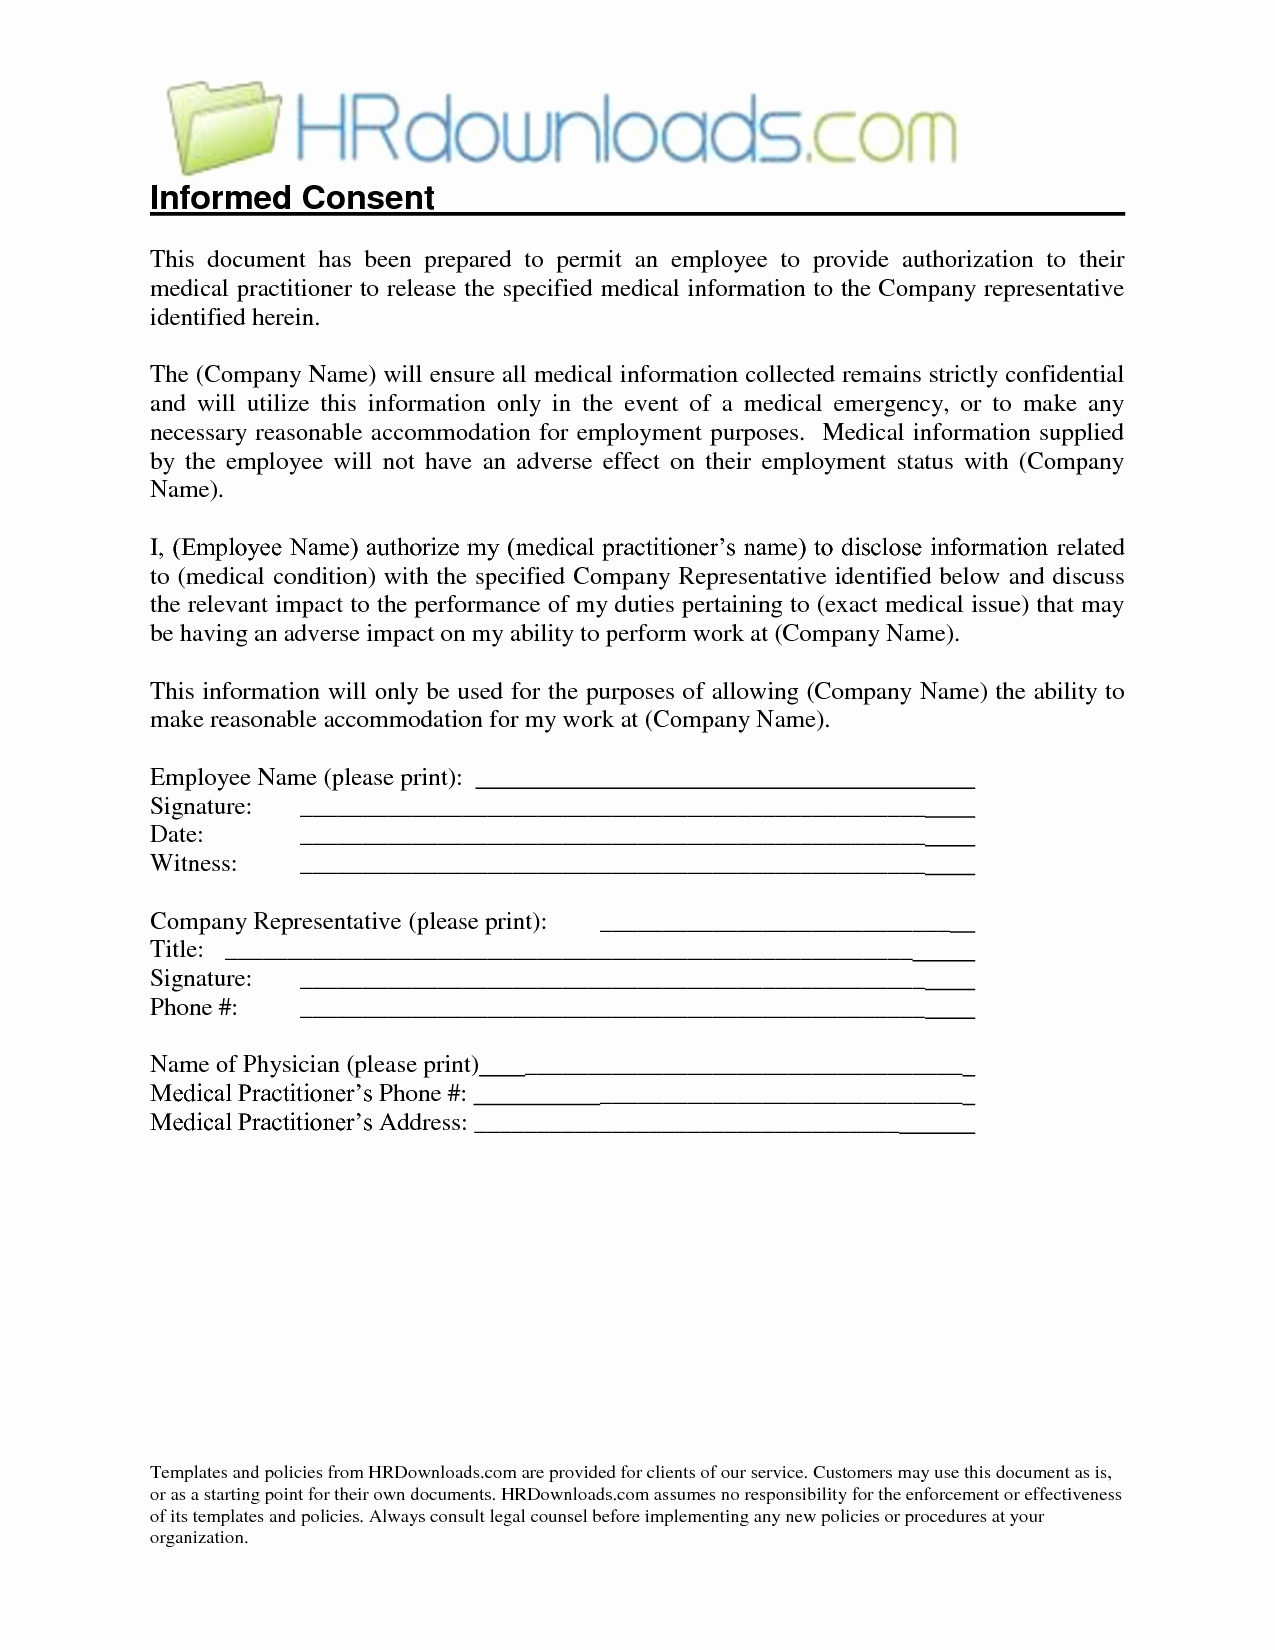 Medical Records Release form Template New Medical Release Information form Template